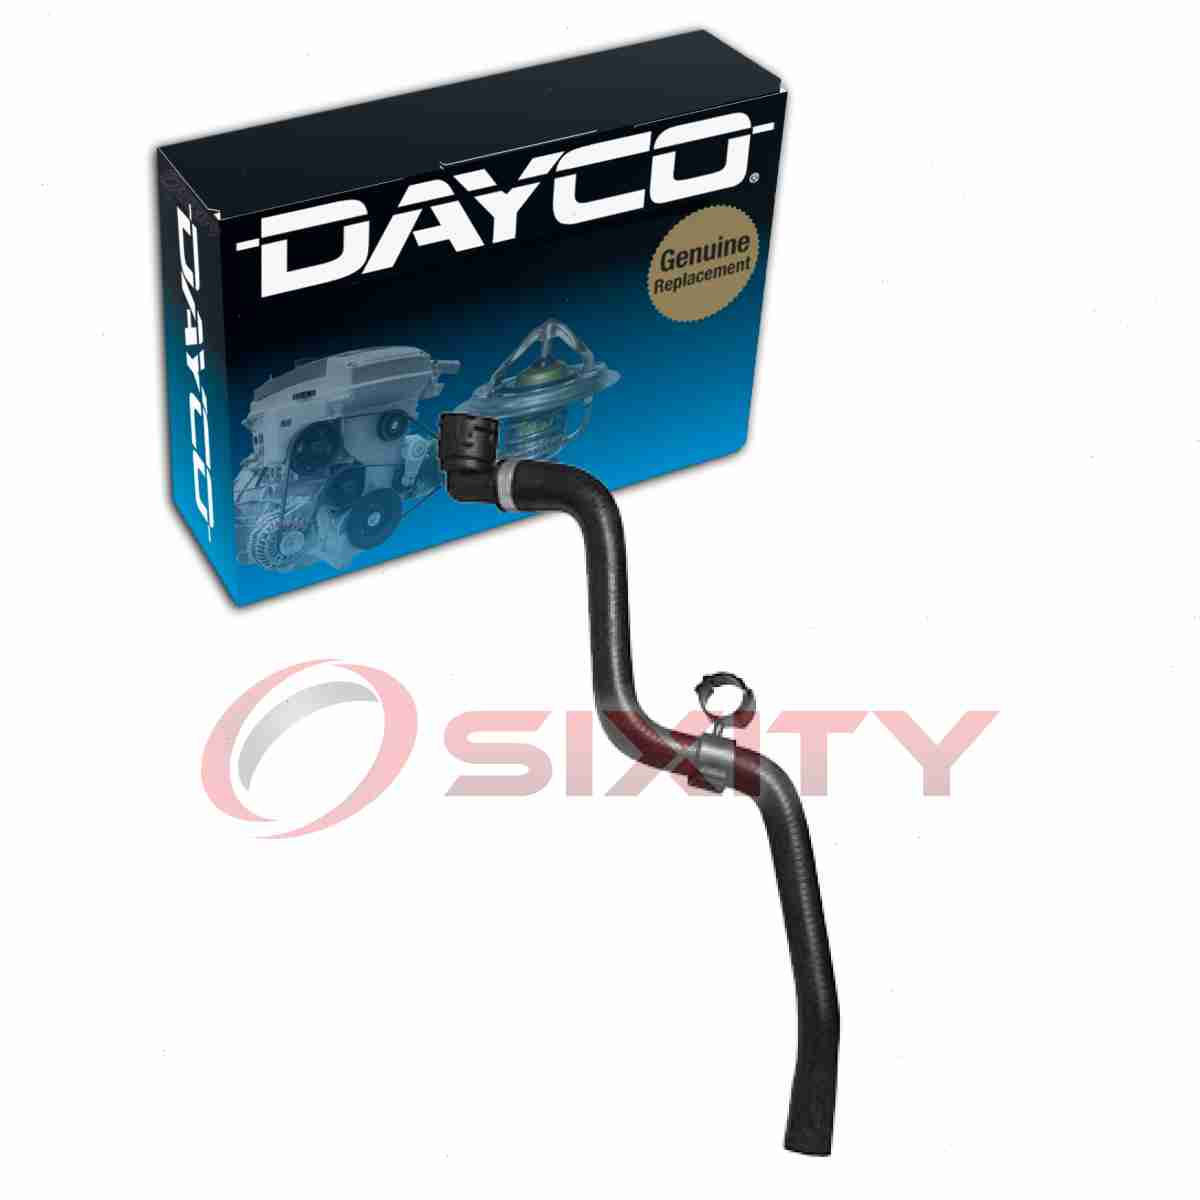 Dayco Heater Hose For 2016 Chevrolet Cruze Limited 1.4L L4